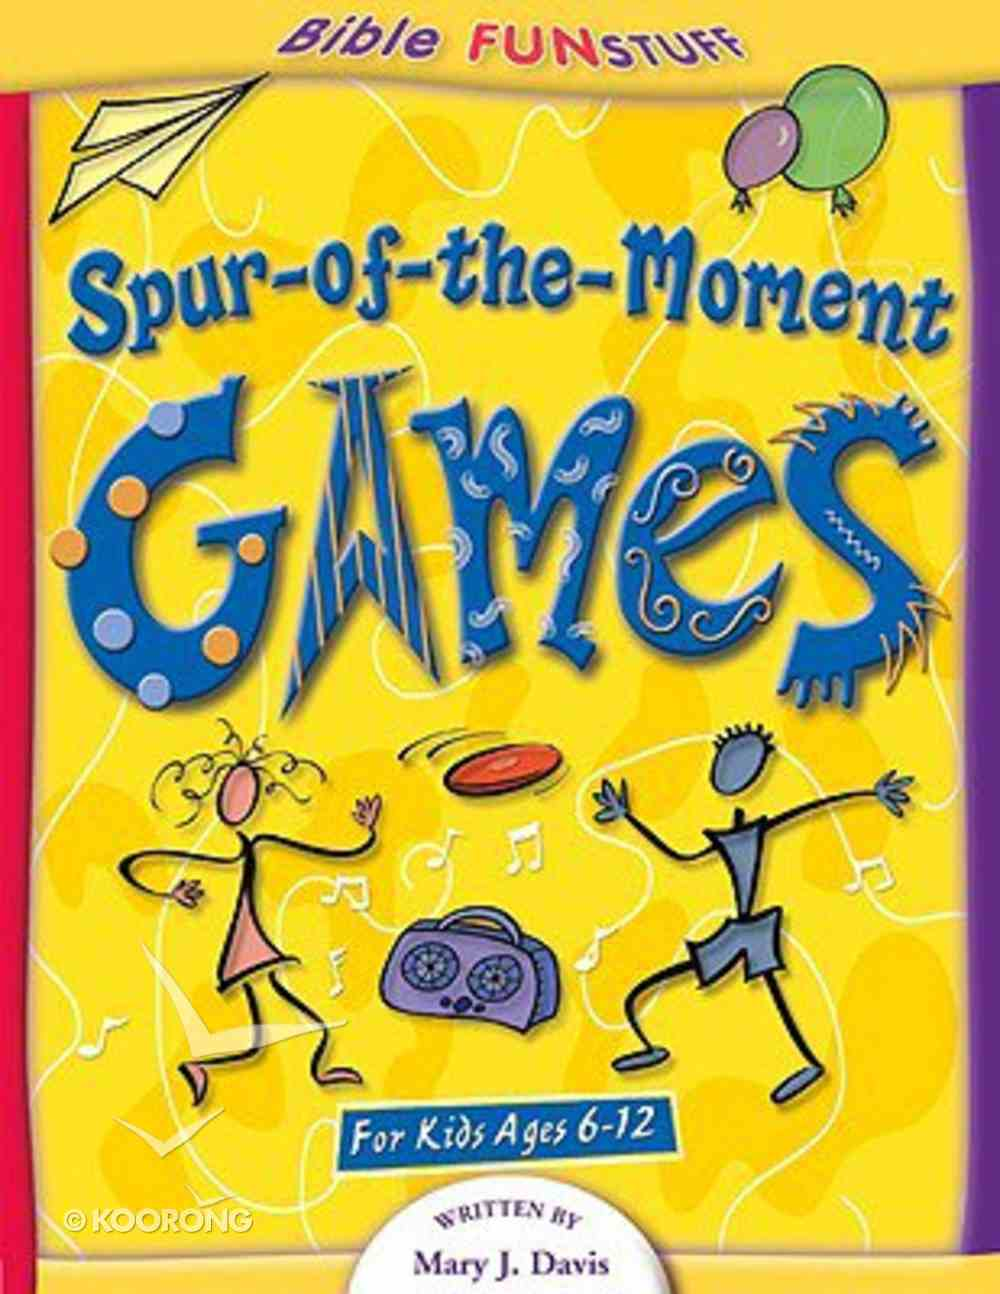 Spur-Of-The-Moment Games (Bible Fun Stuff Series) Paperback